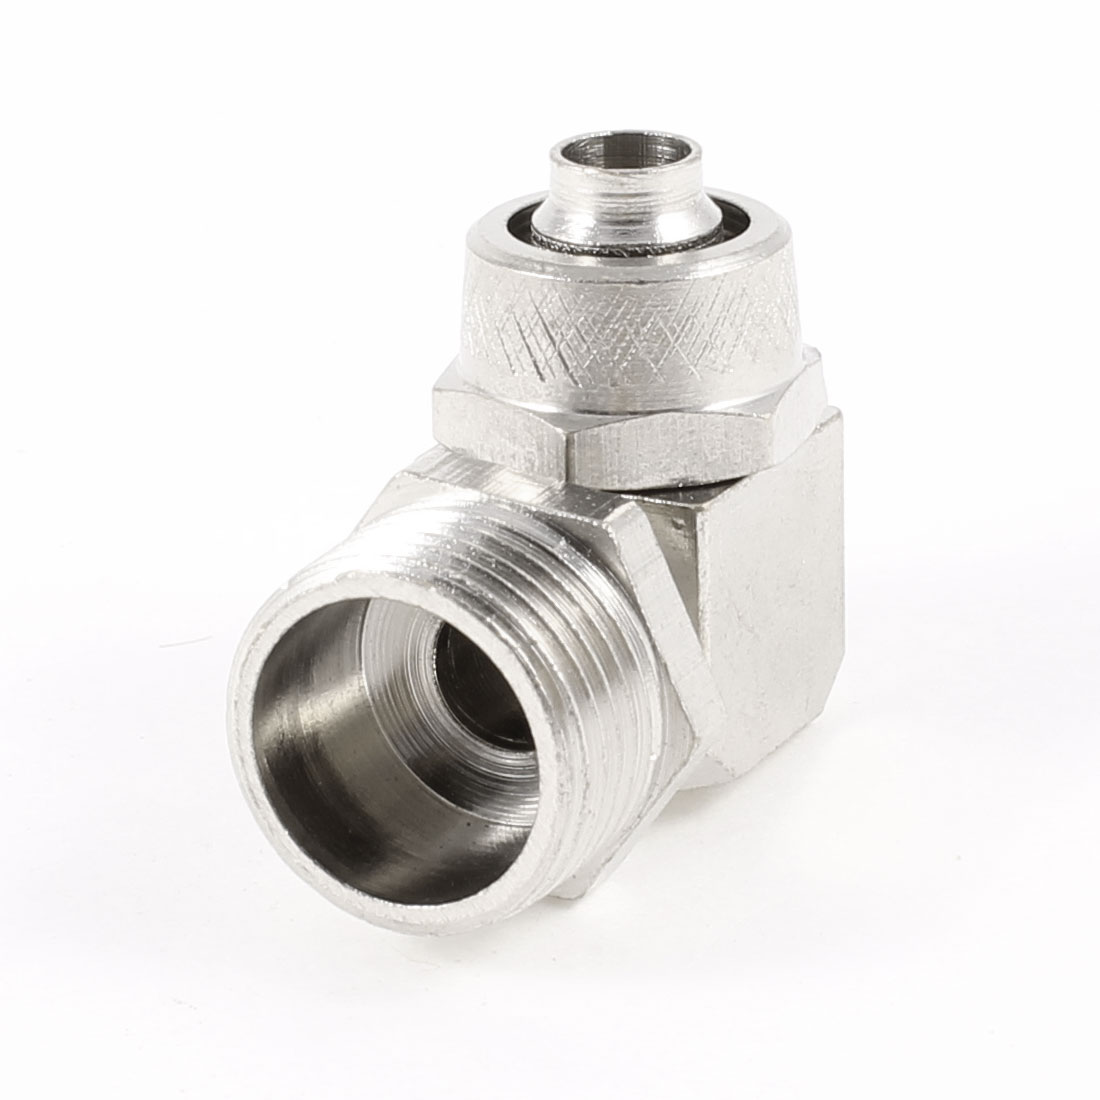 16mm Male Thread L Shaped Quick Joint Connector for 6mmx10mm Air Hose